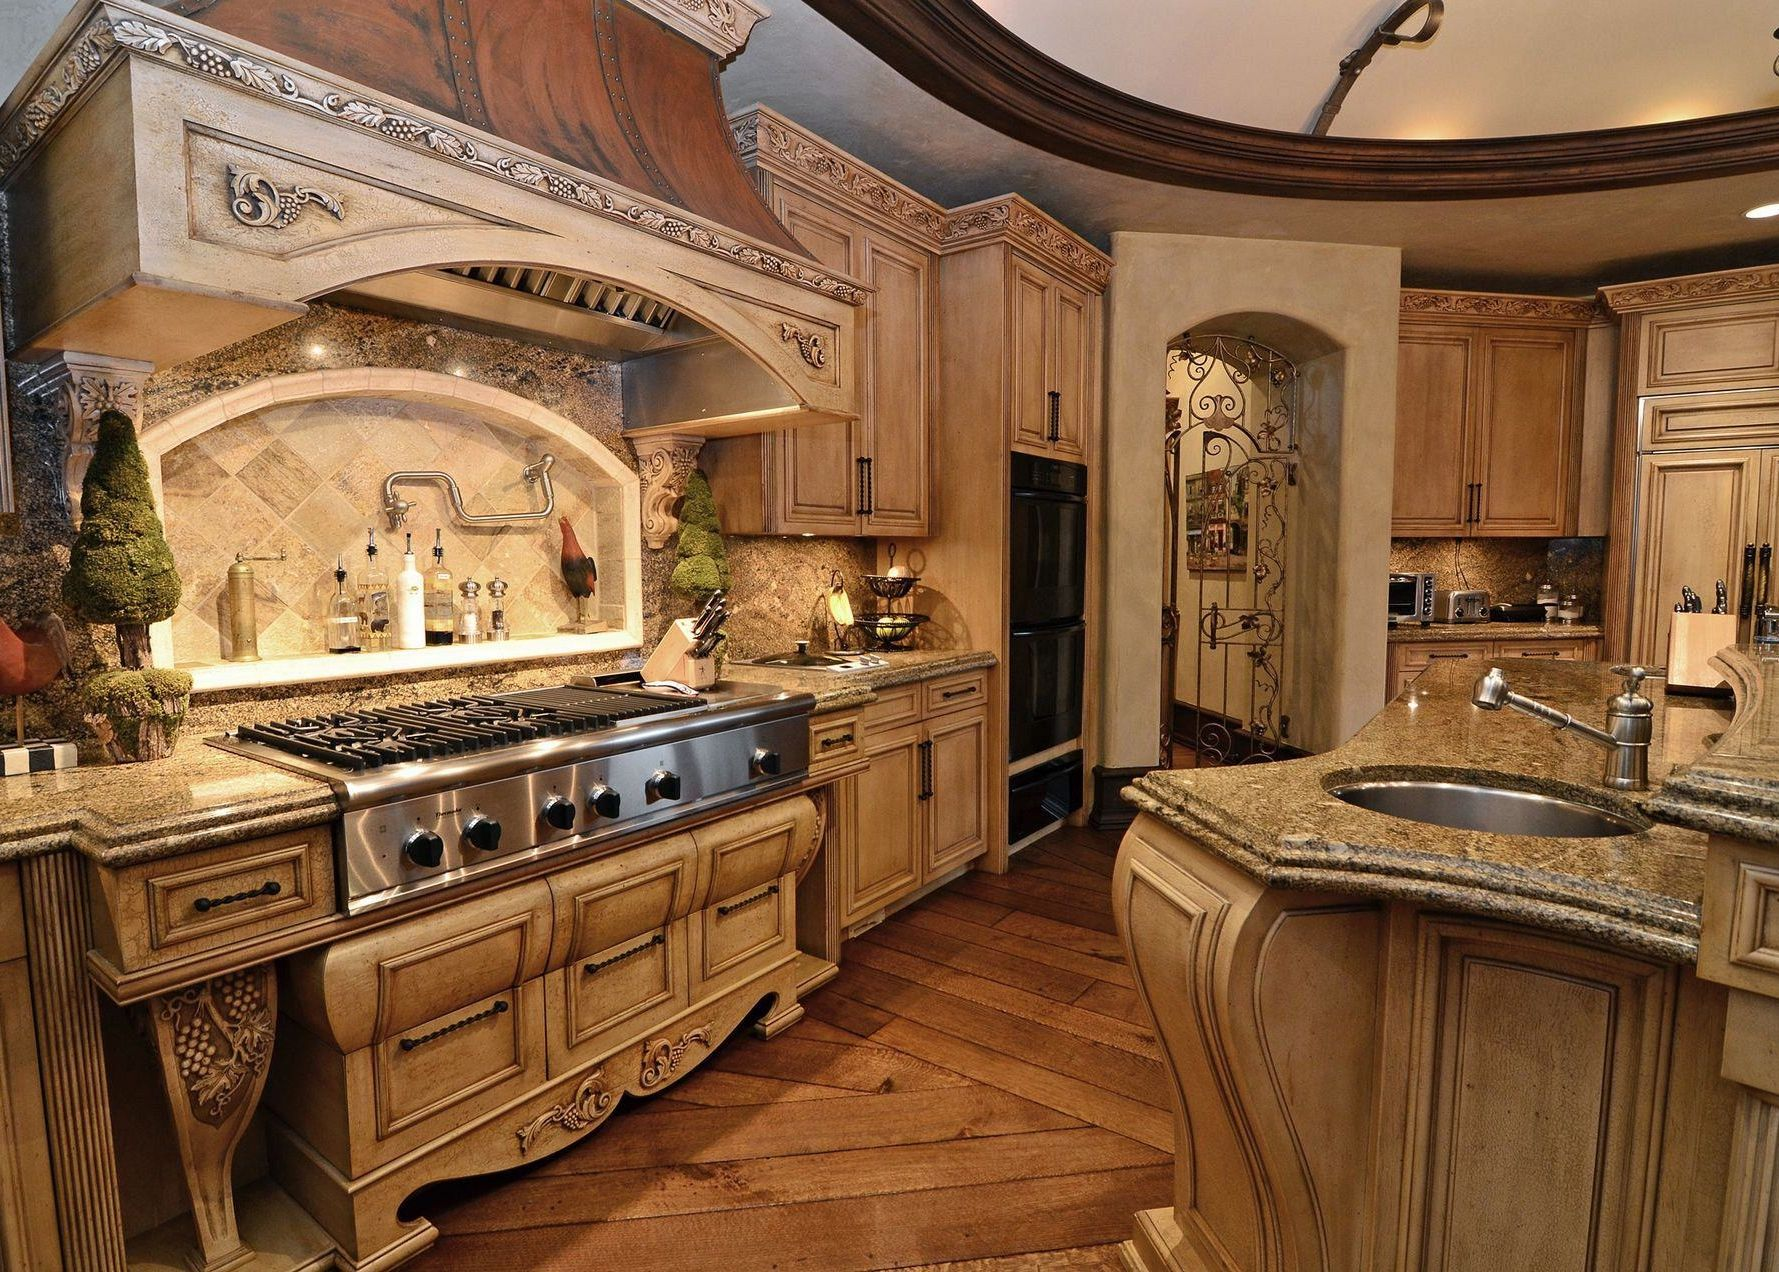 french country kitchen design ideas and decor from simmons building